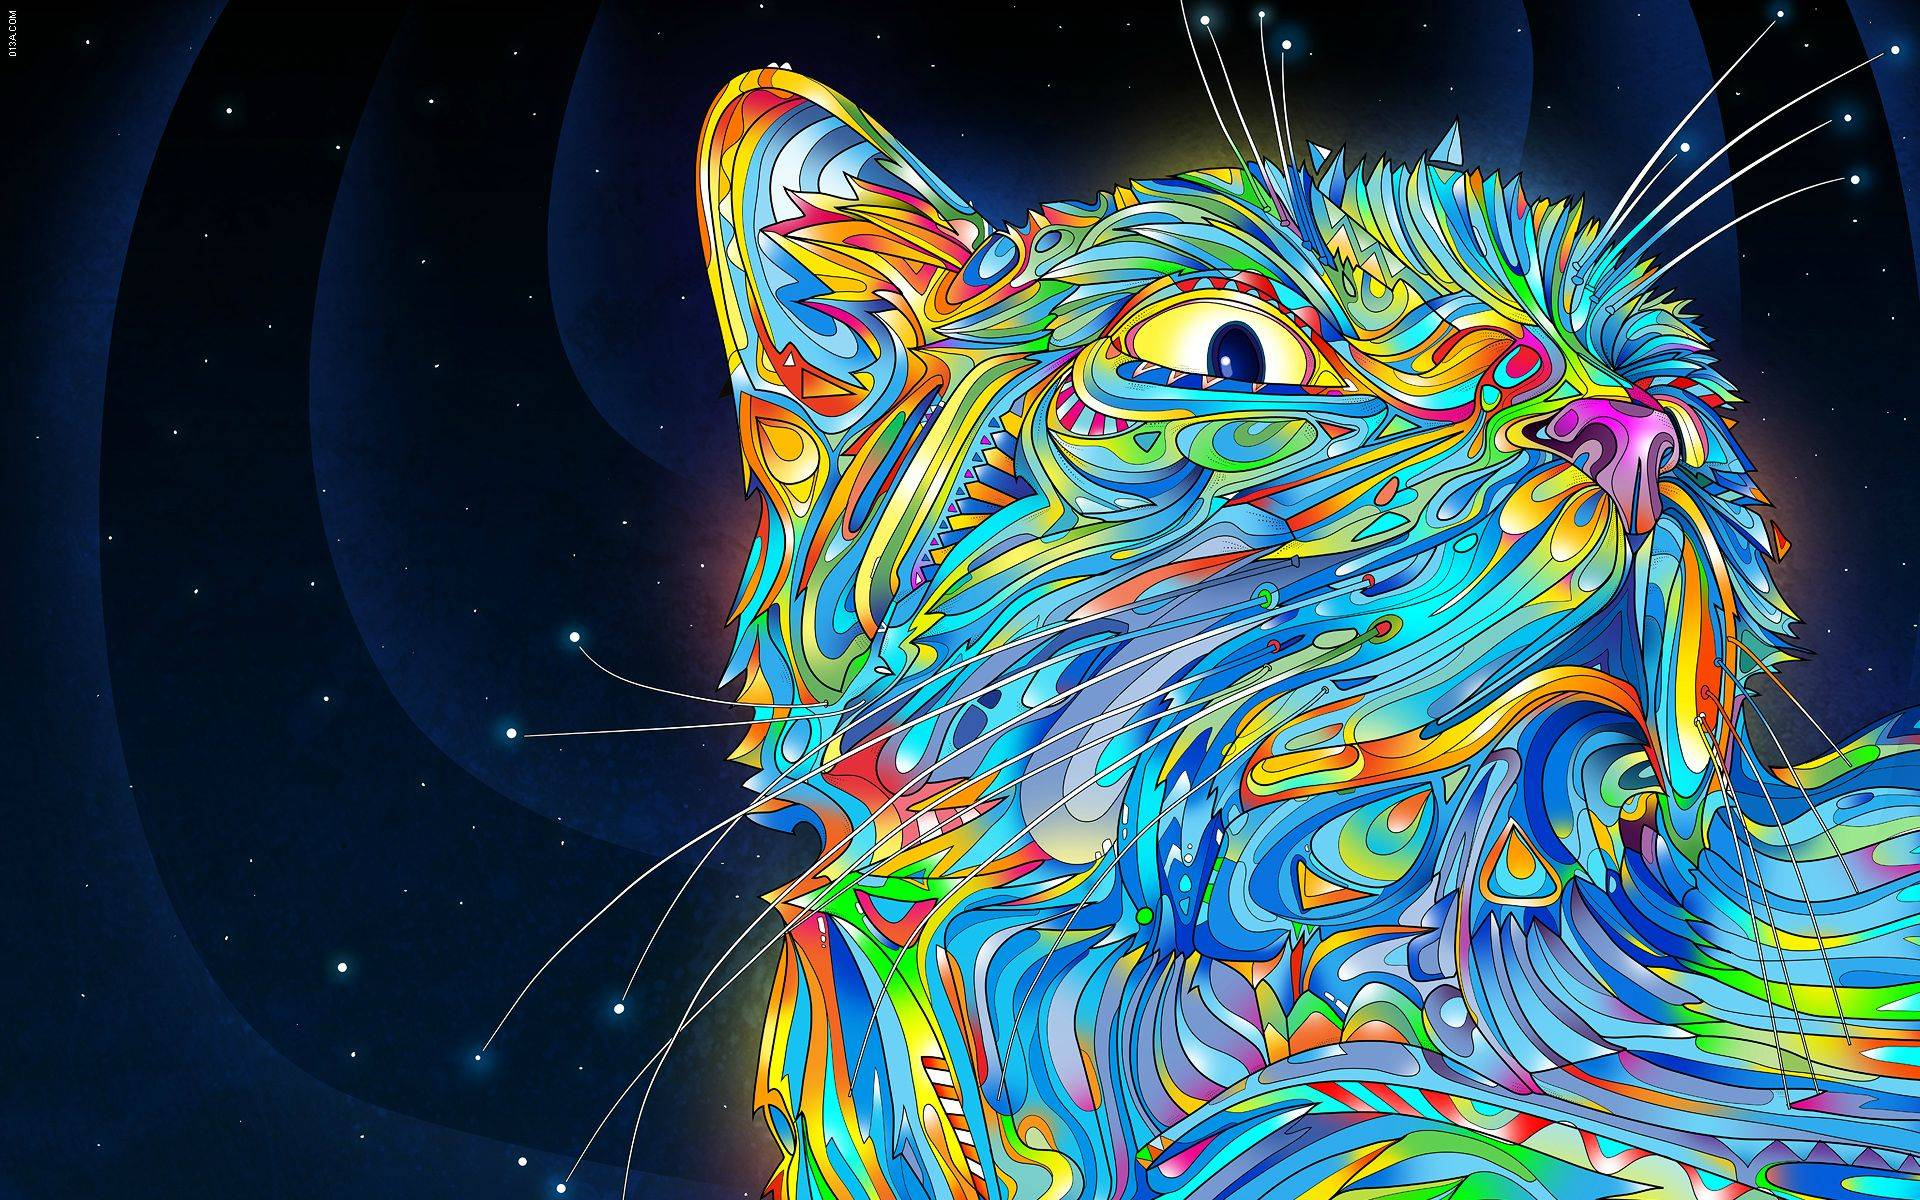 Cool Trippy Wallpapers – How to Make Your Desktop Look Cool